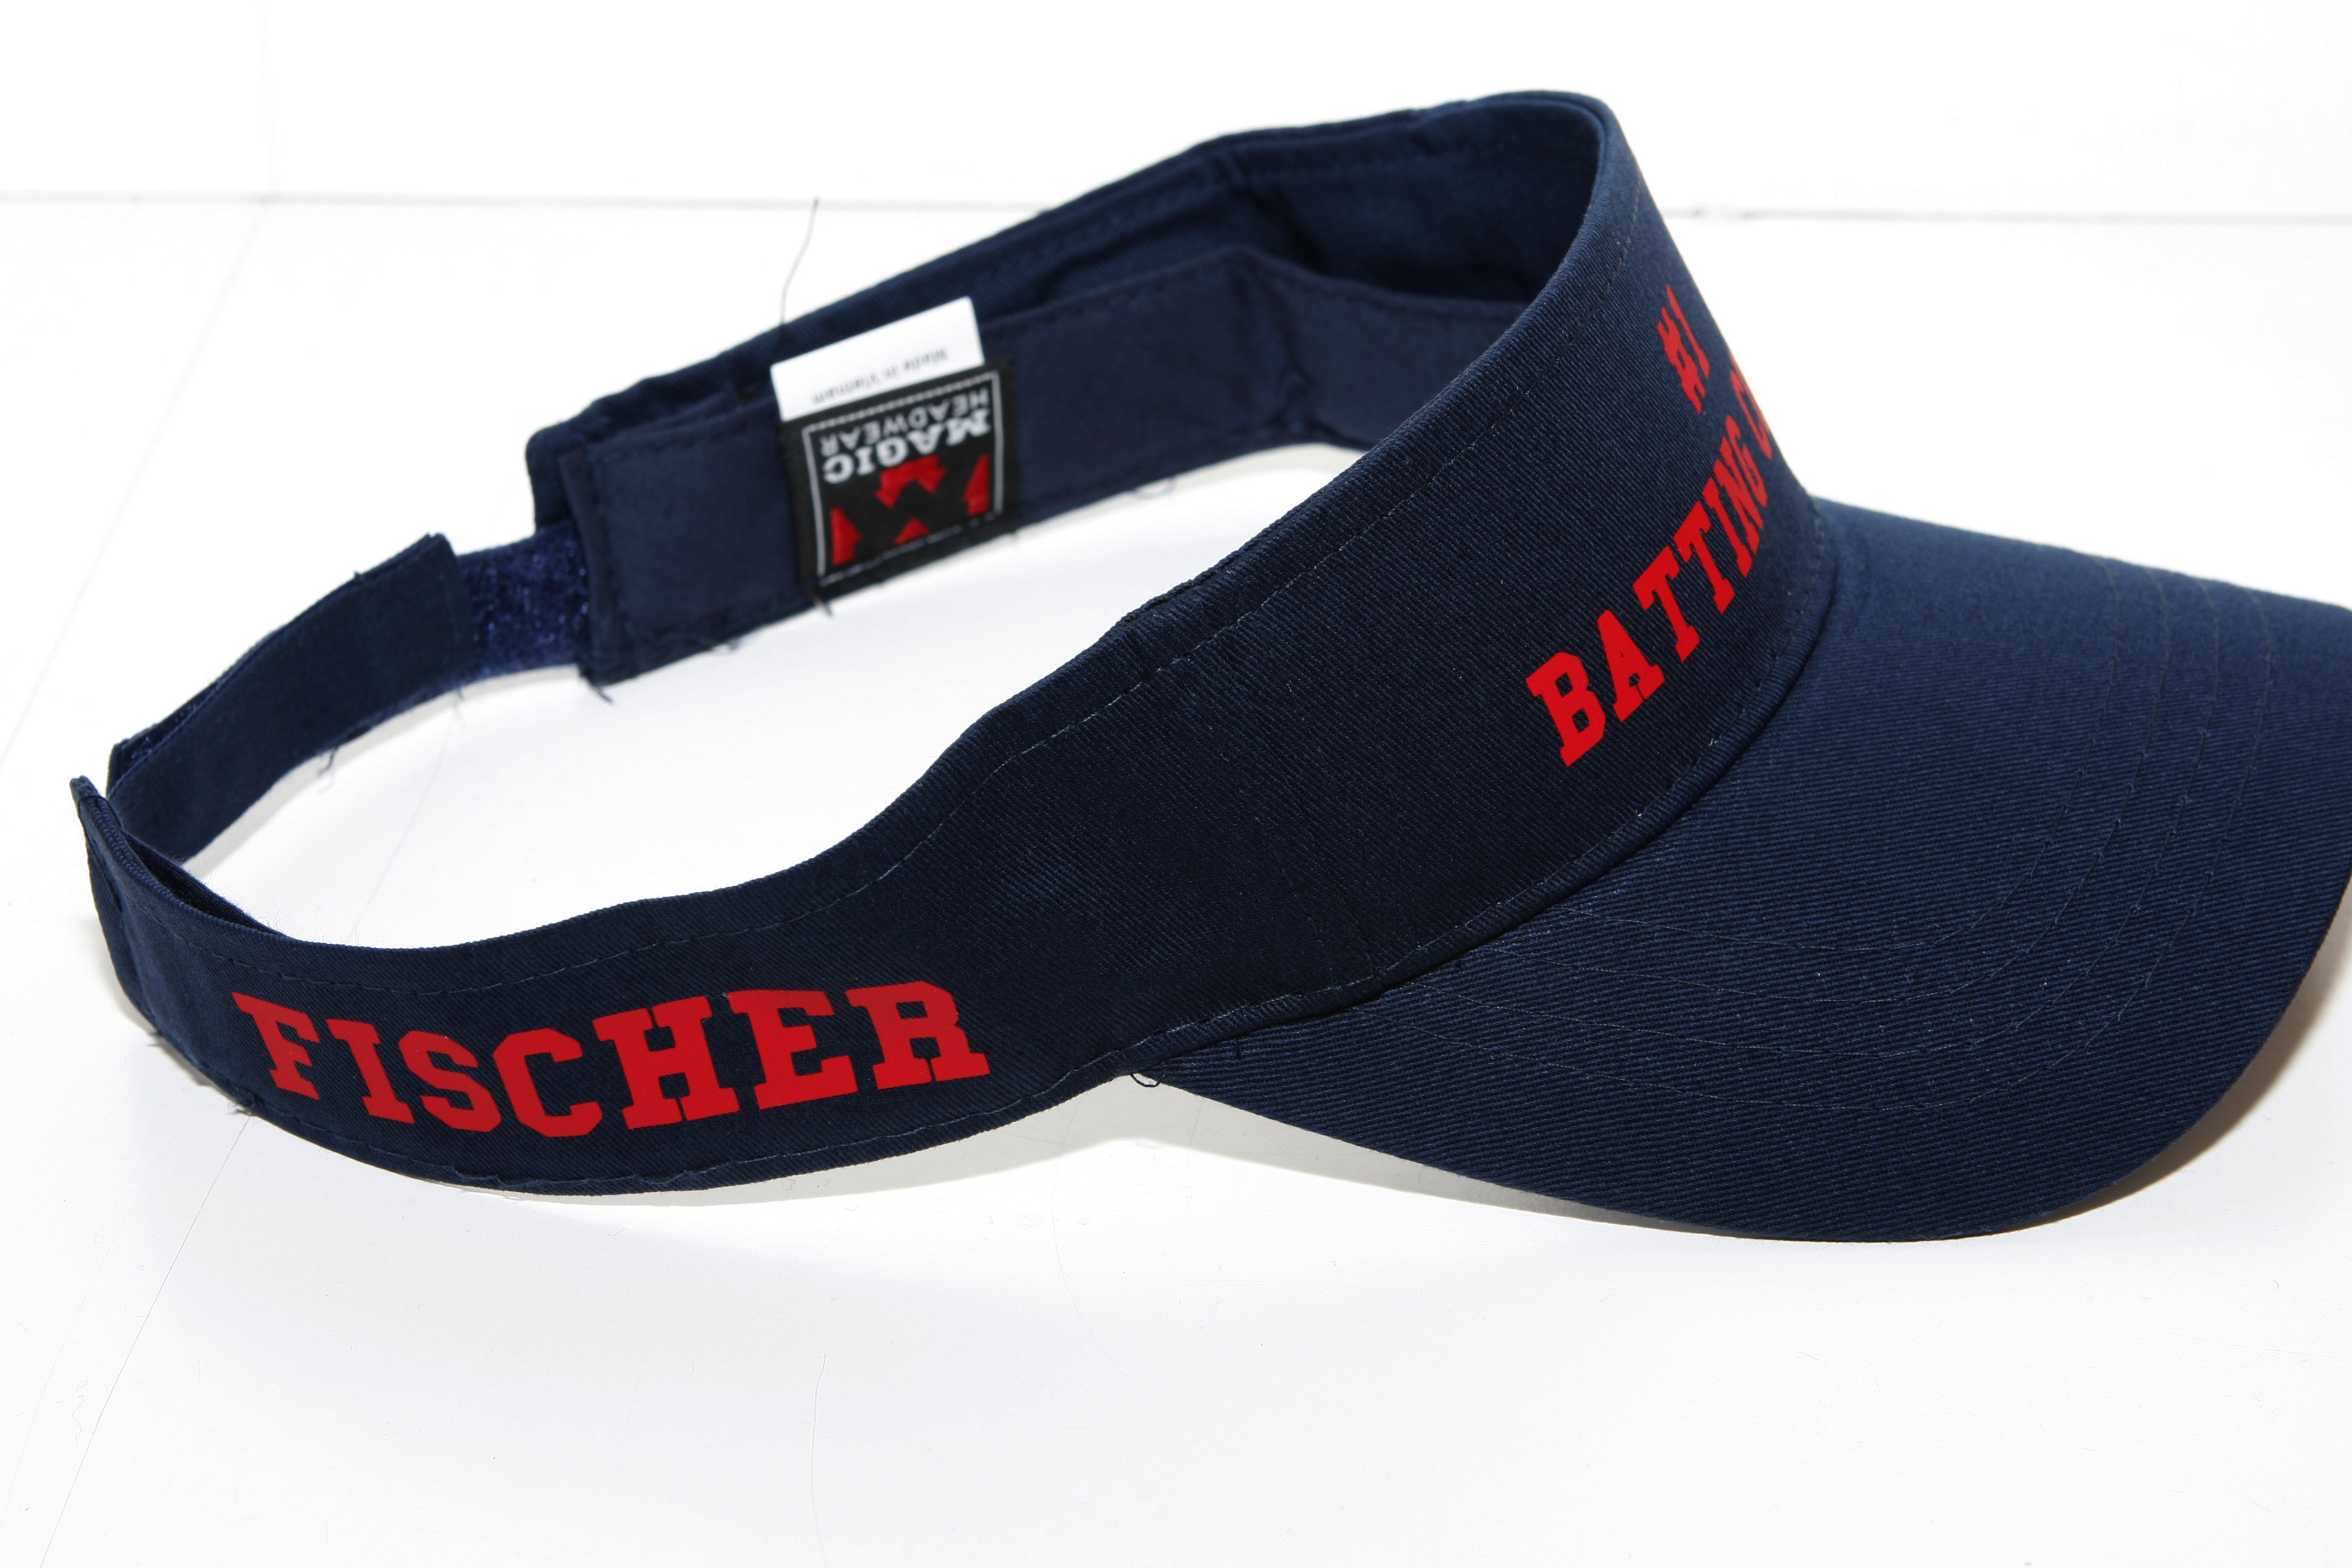 c0ec5d3bb27ee9 Custom Visors & Personalized Visors at Spectracolor in Simi Valley, CA